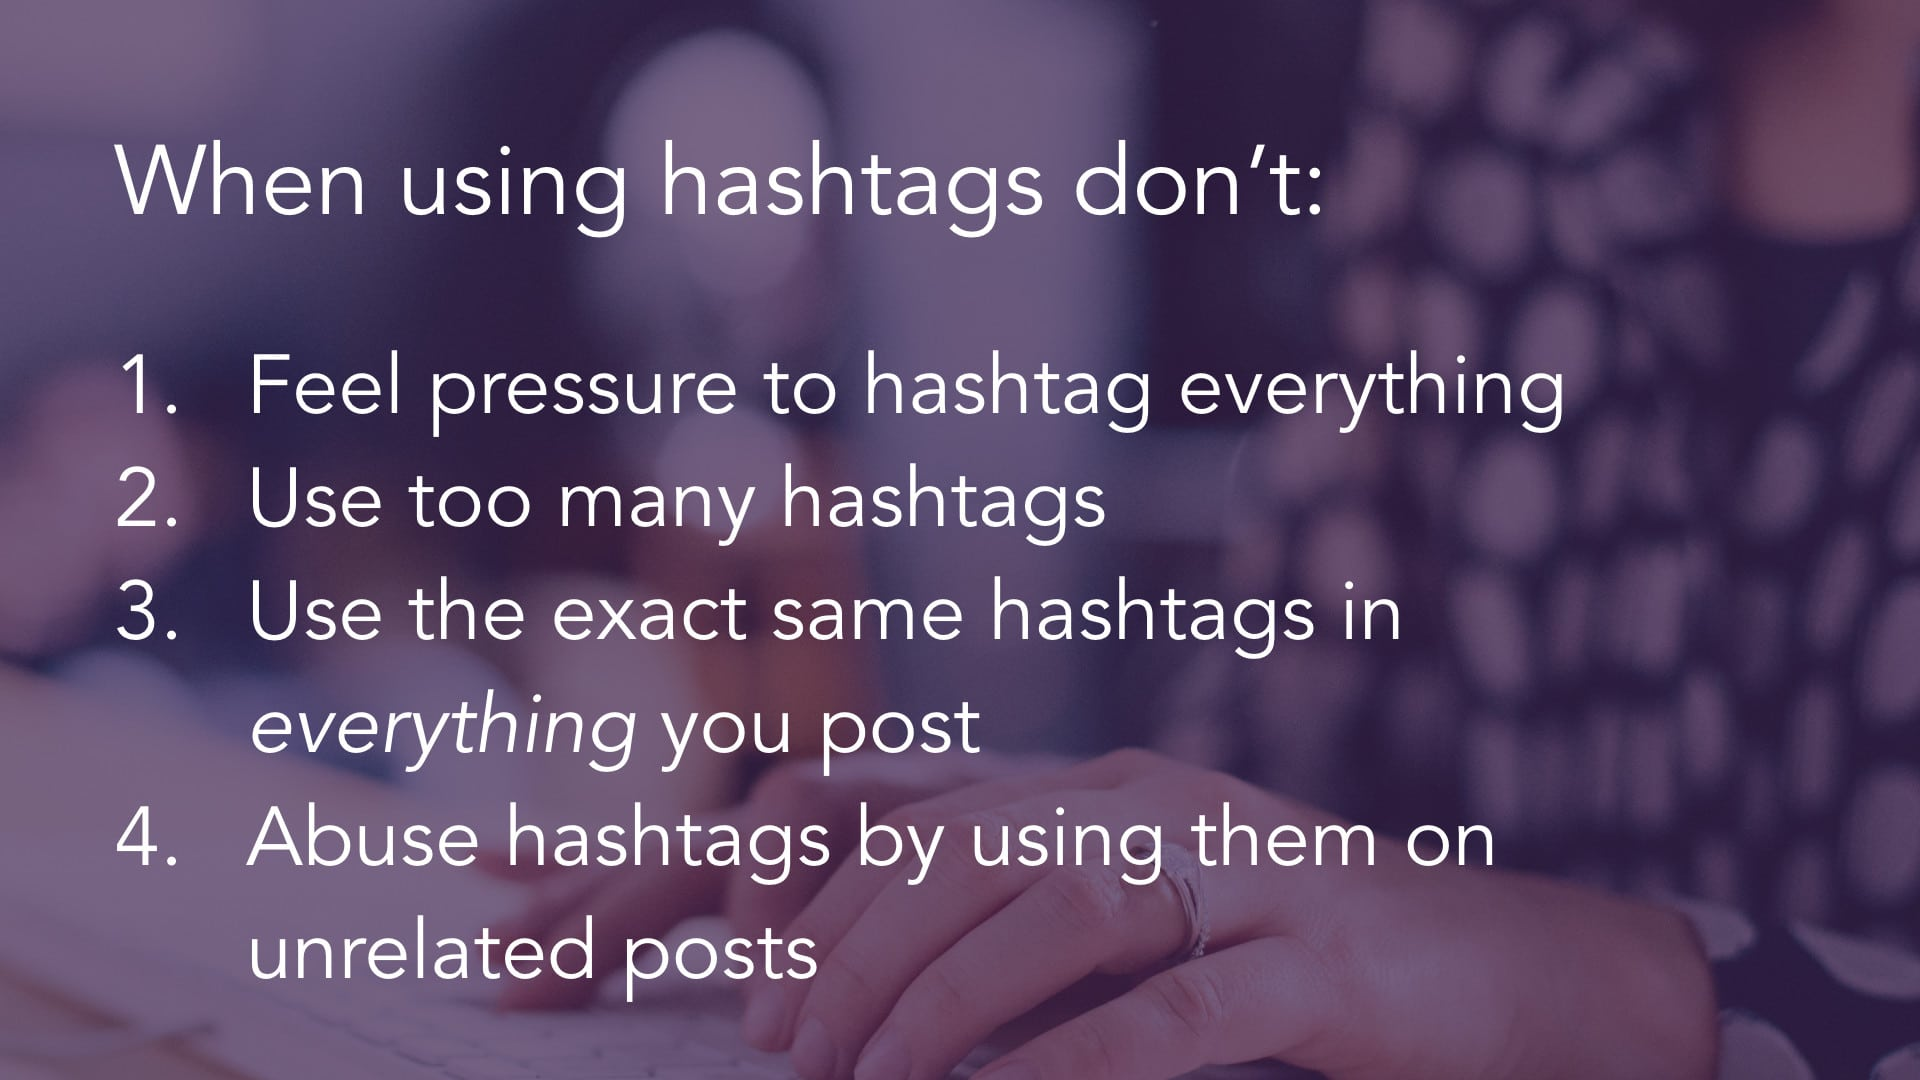 Find Appropriate Hashtags